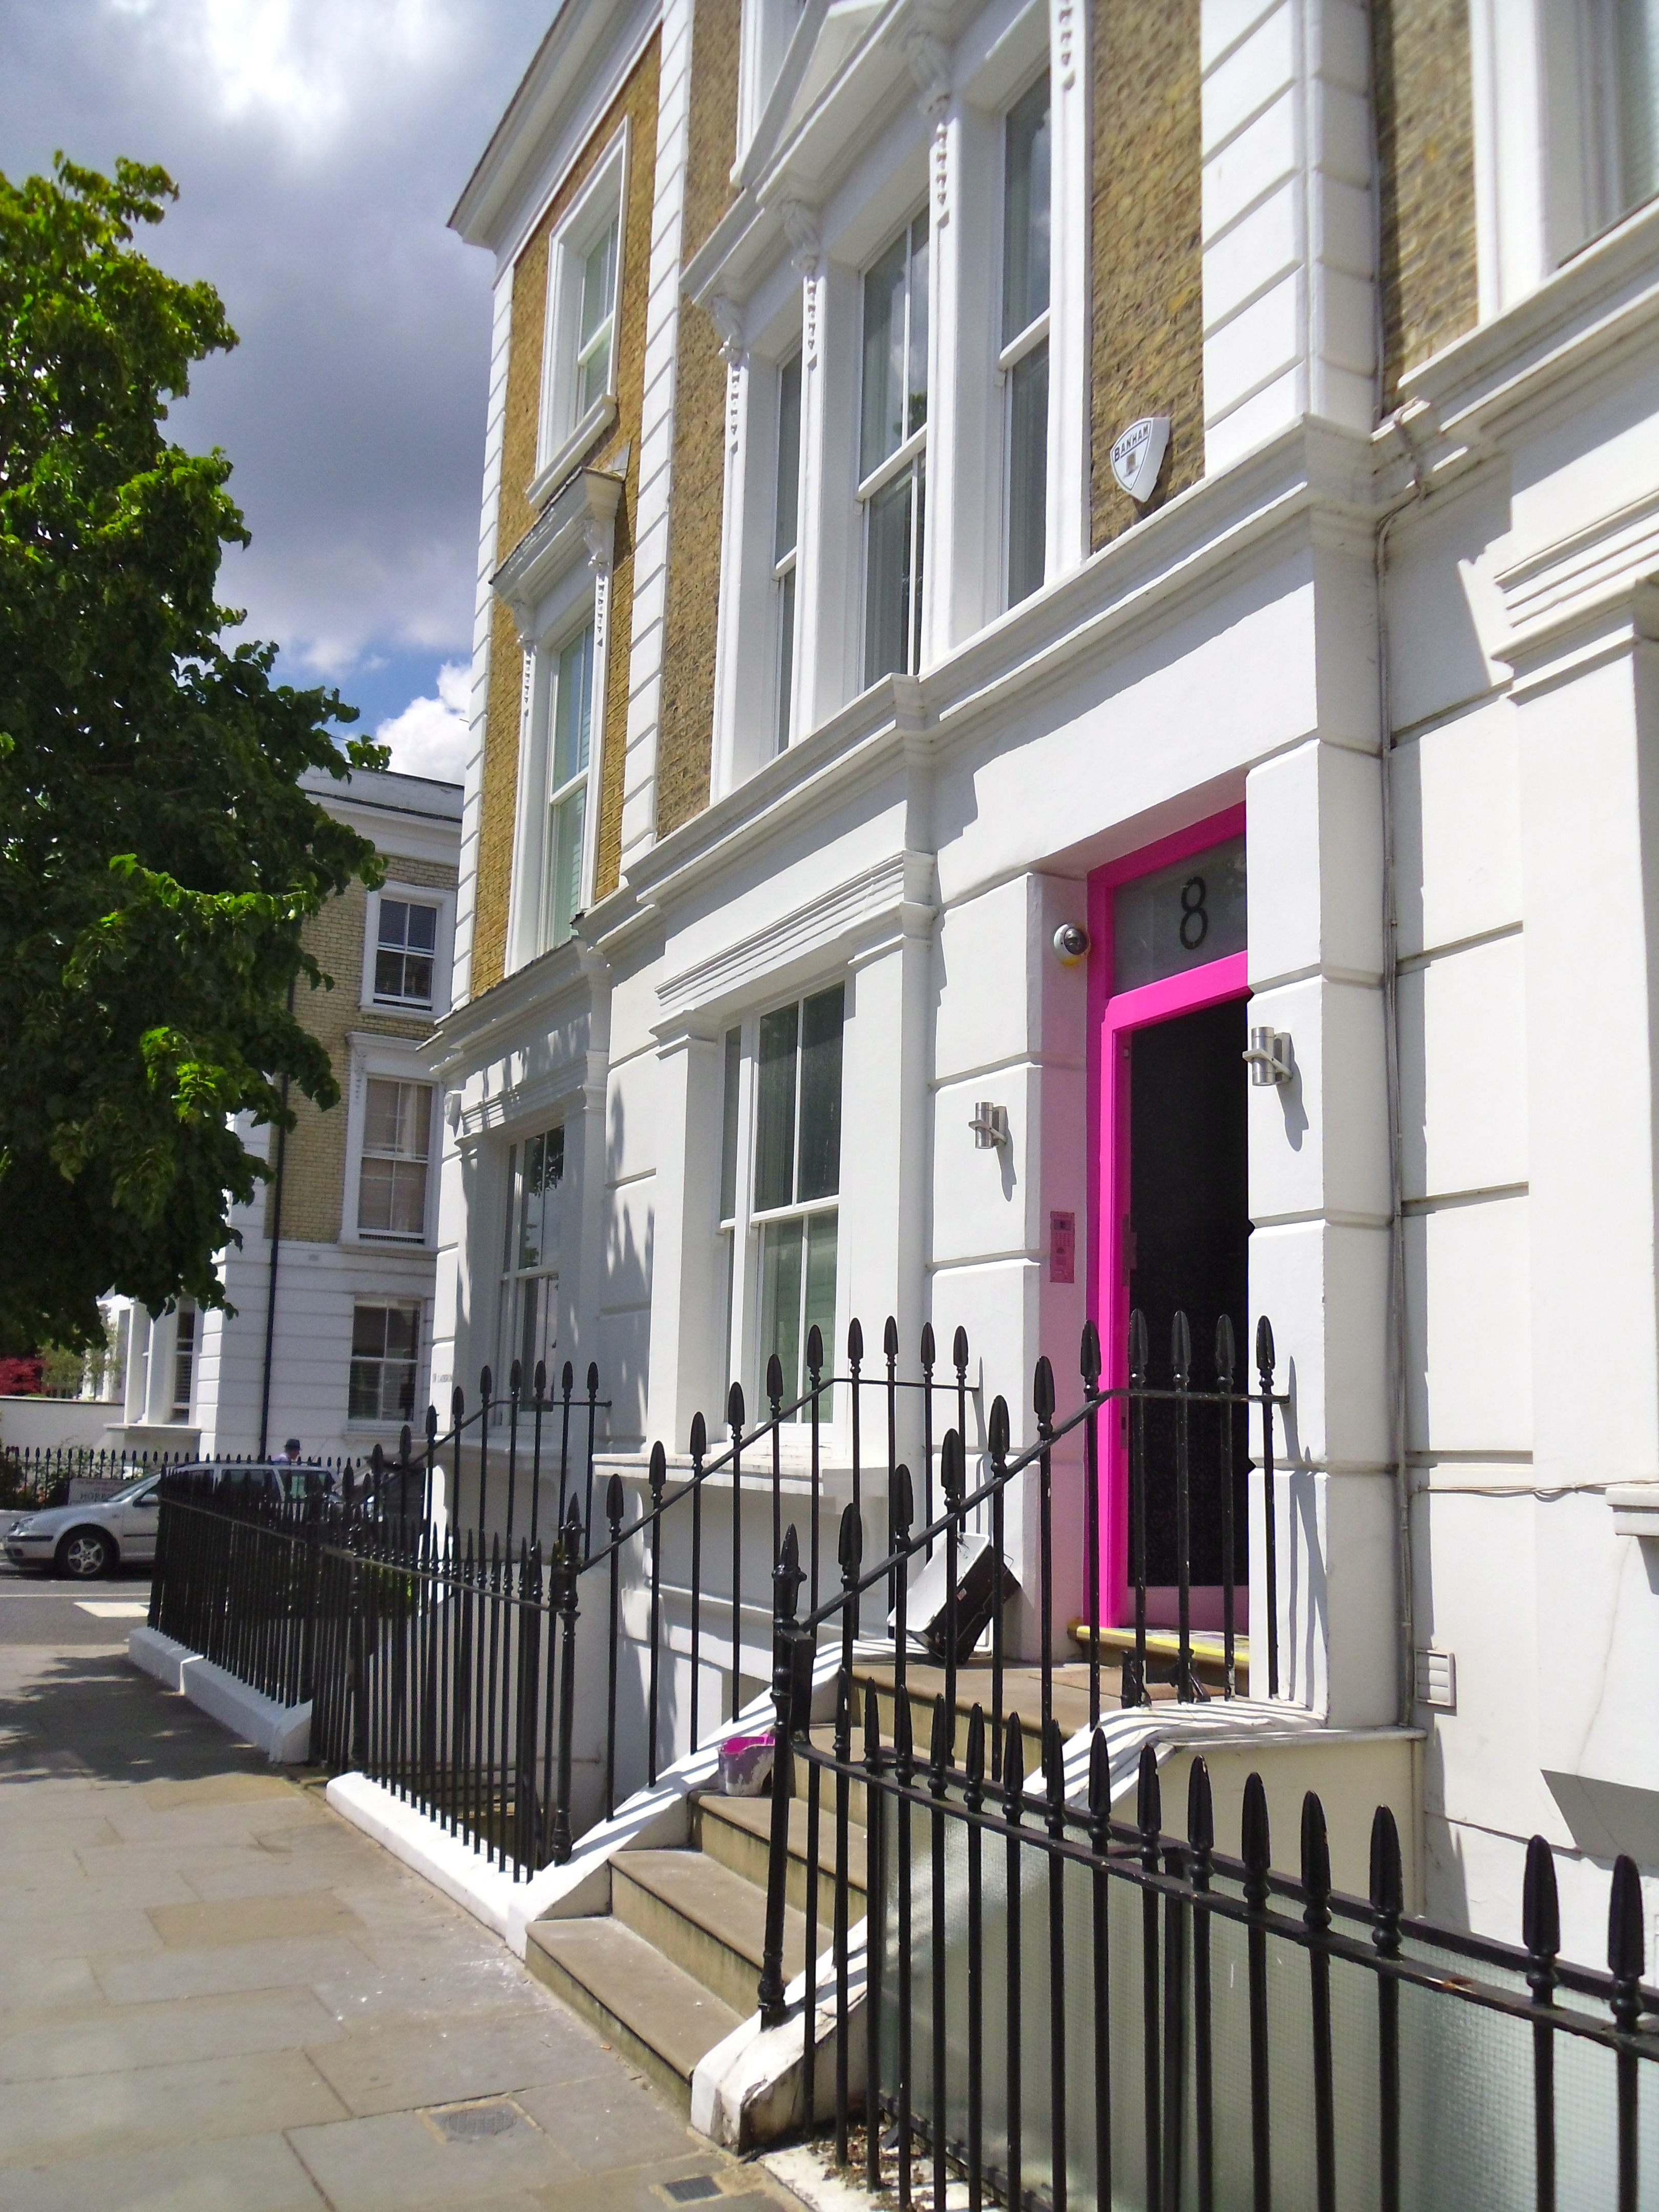 Casa georgiana Notting Hill